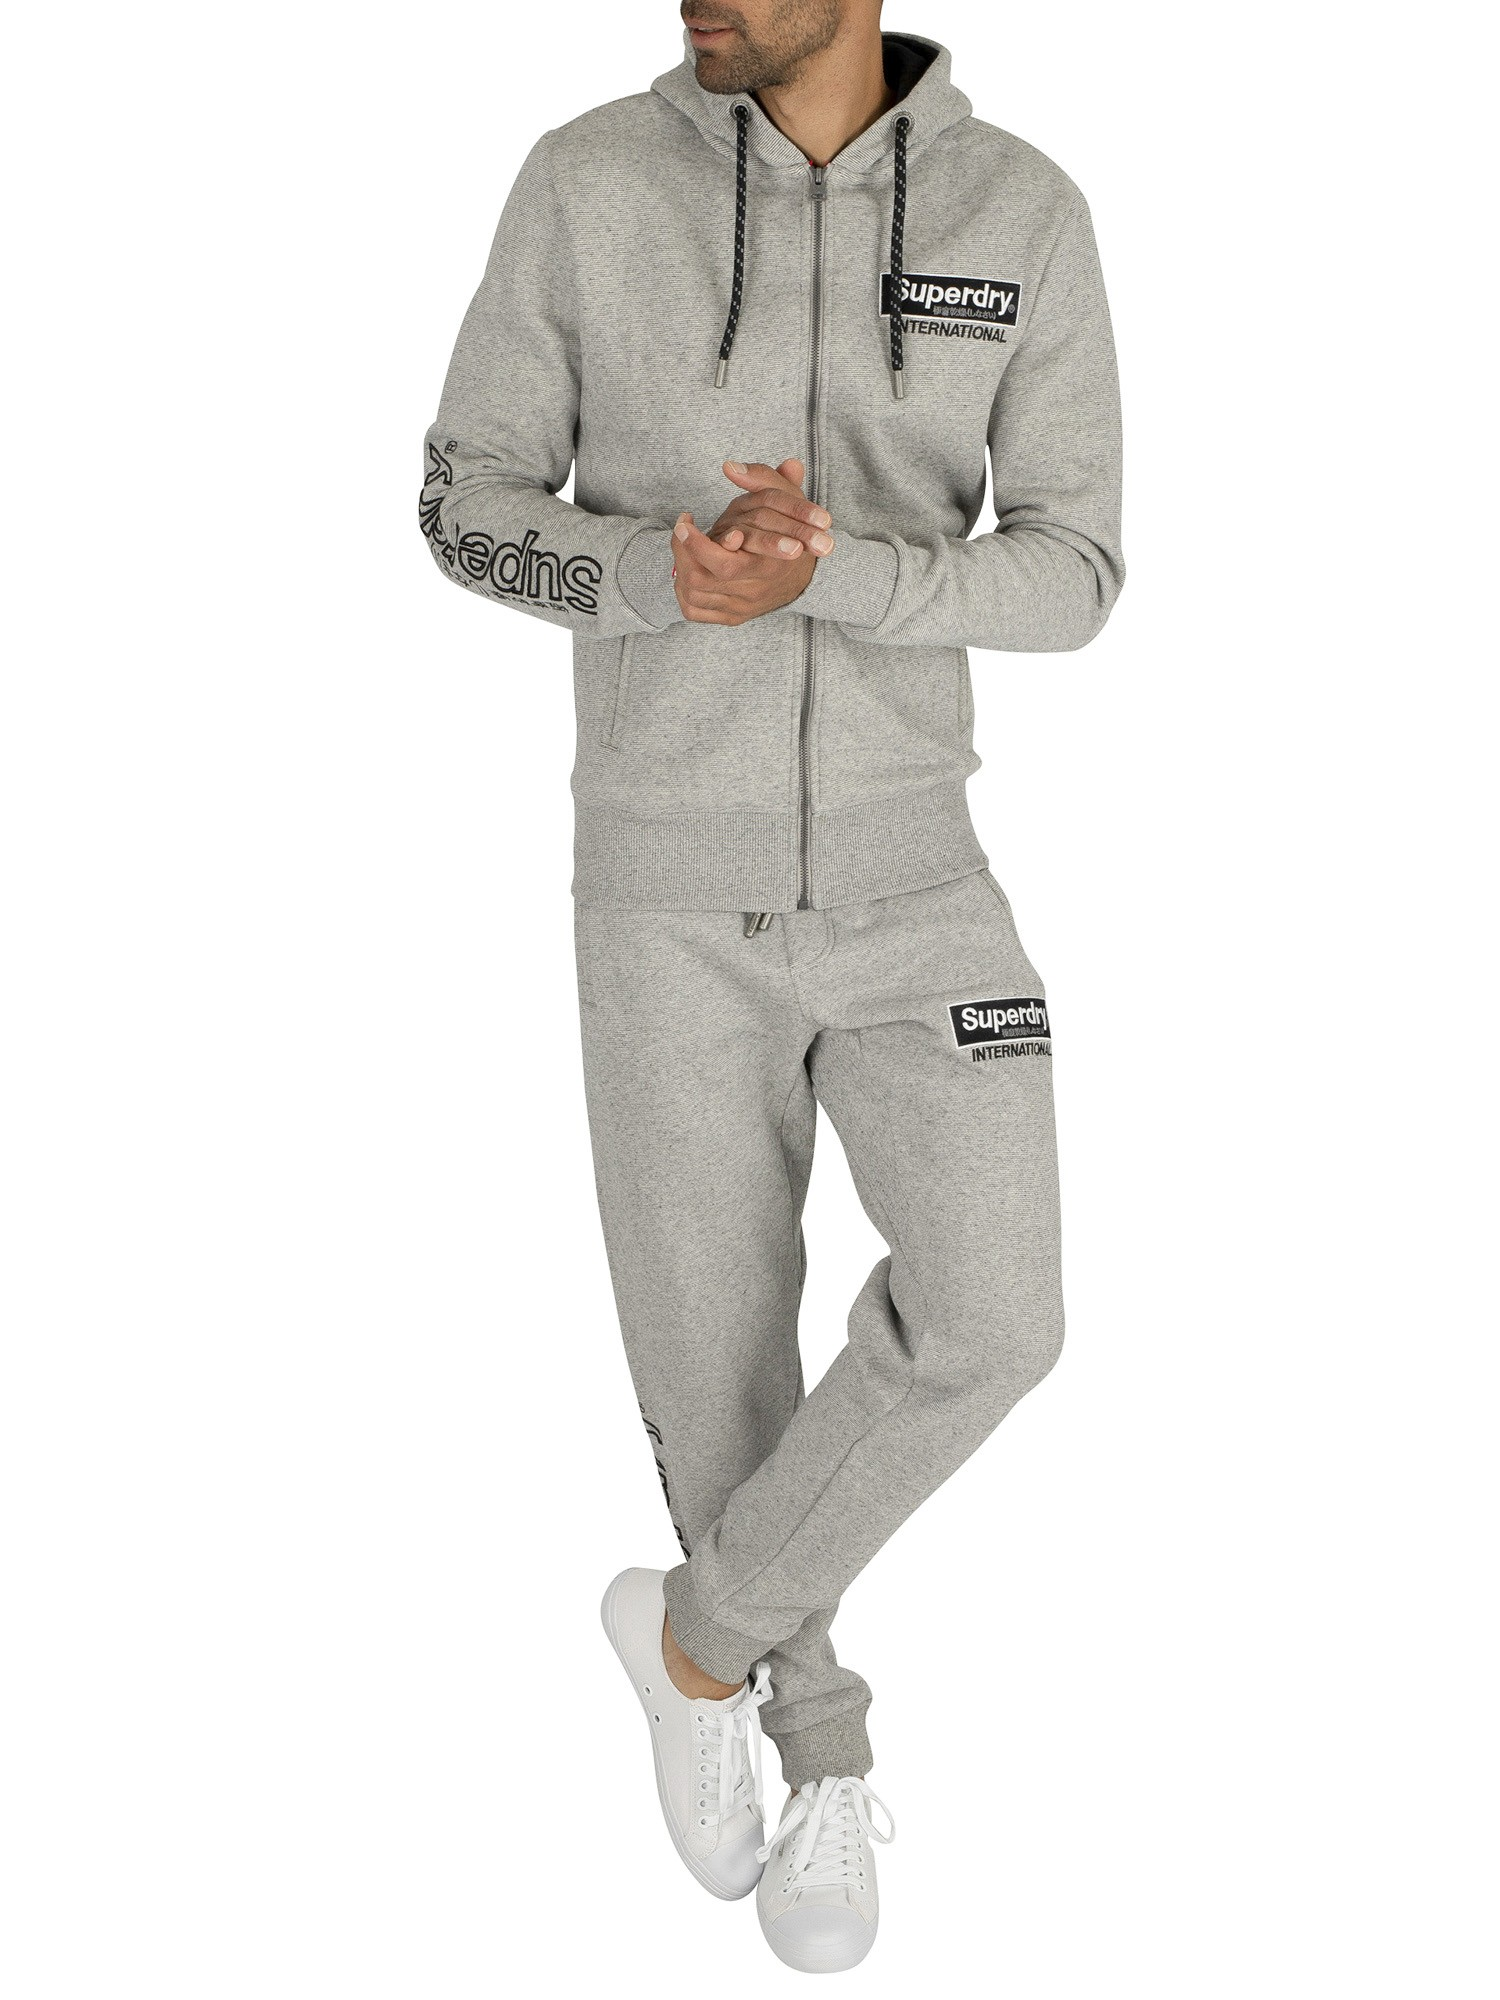 Superdry International Applique Zip Hoodie - Silver Glass Feeder